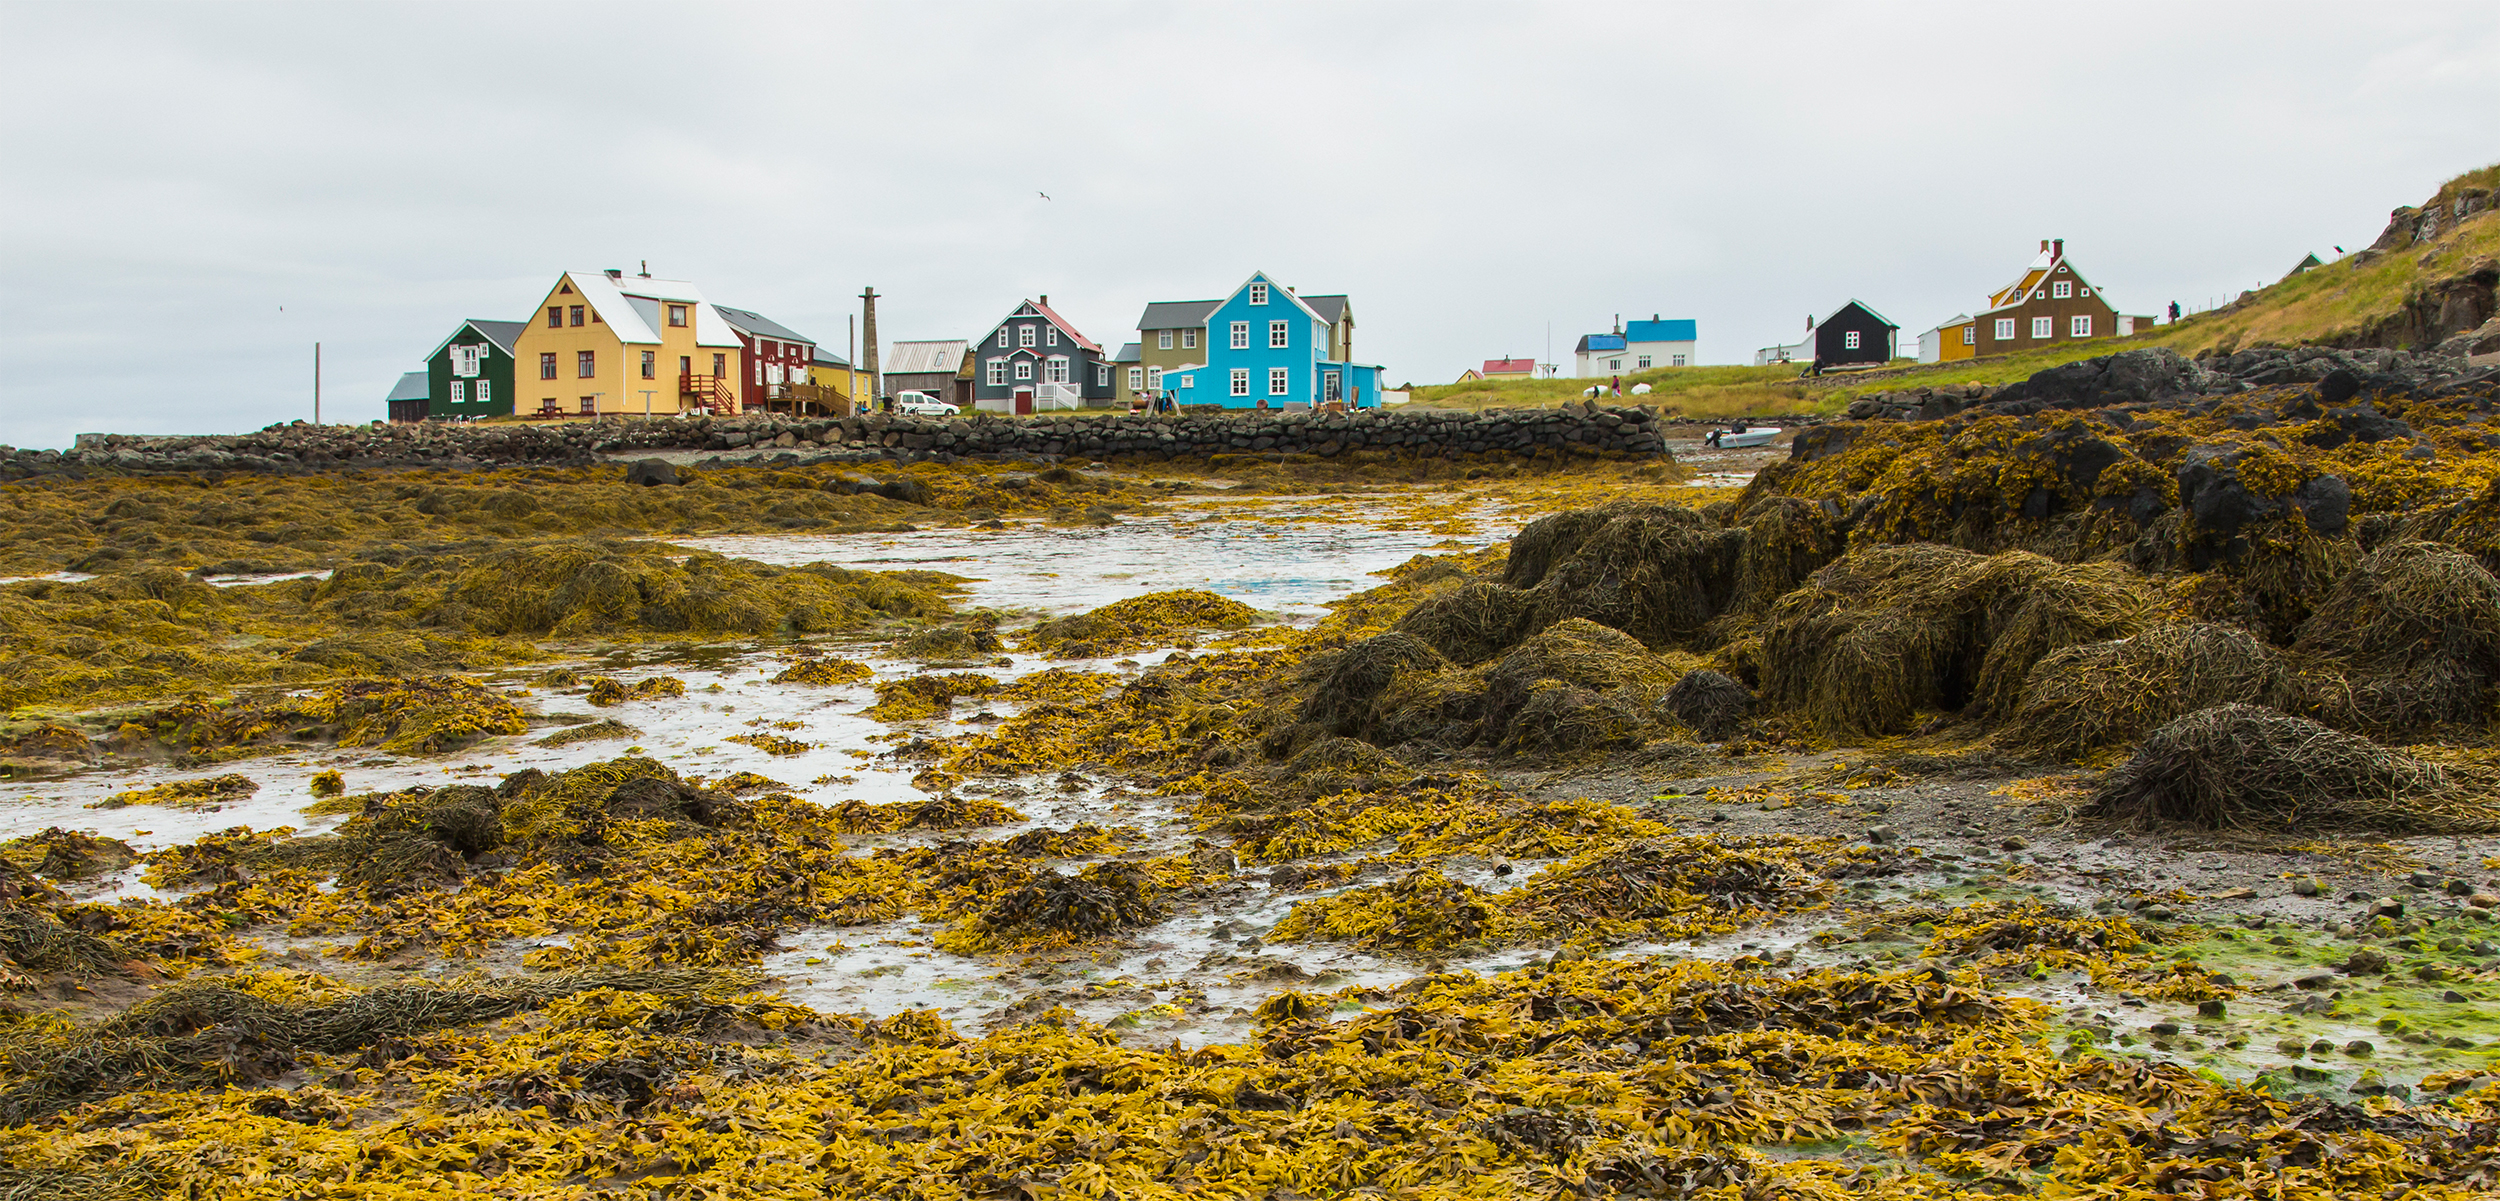 In one Icelandic community, wild rockweed is an economic blessing. Seasonally, workers harvest, dry, and export wild rockweed for animal feed. Photo by Ralph Lee Hopkins/Getty